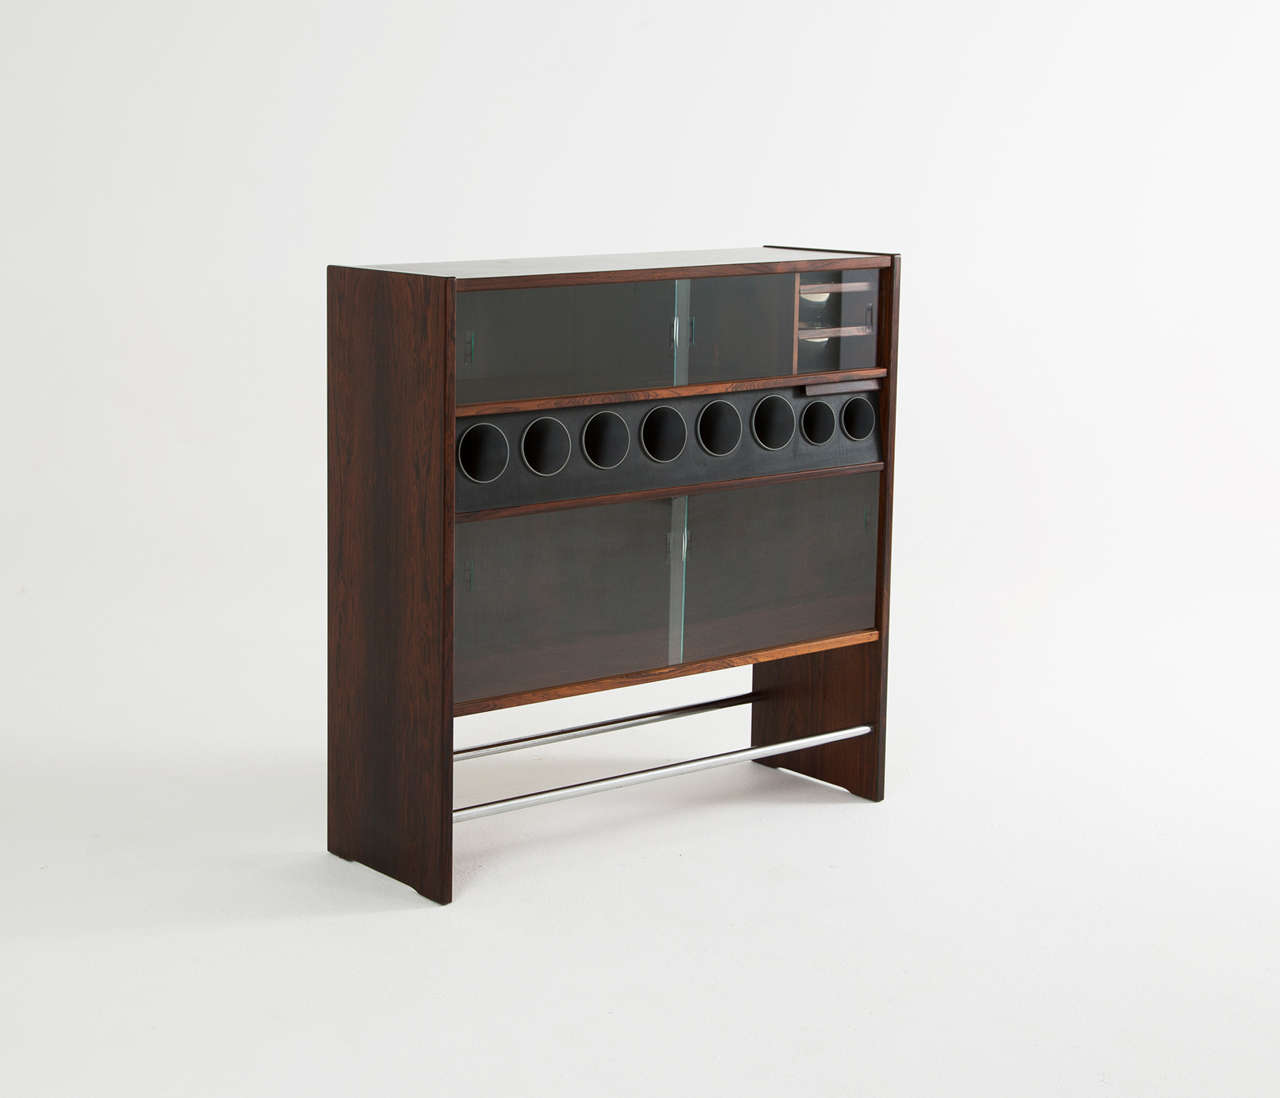 Luxurious danish dry bar in rosewood for sale at 1stdibs for Home dry bar furniture